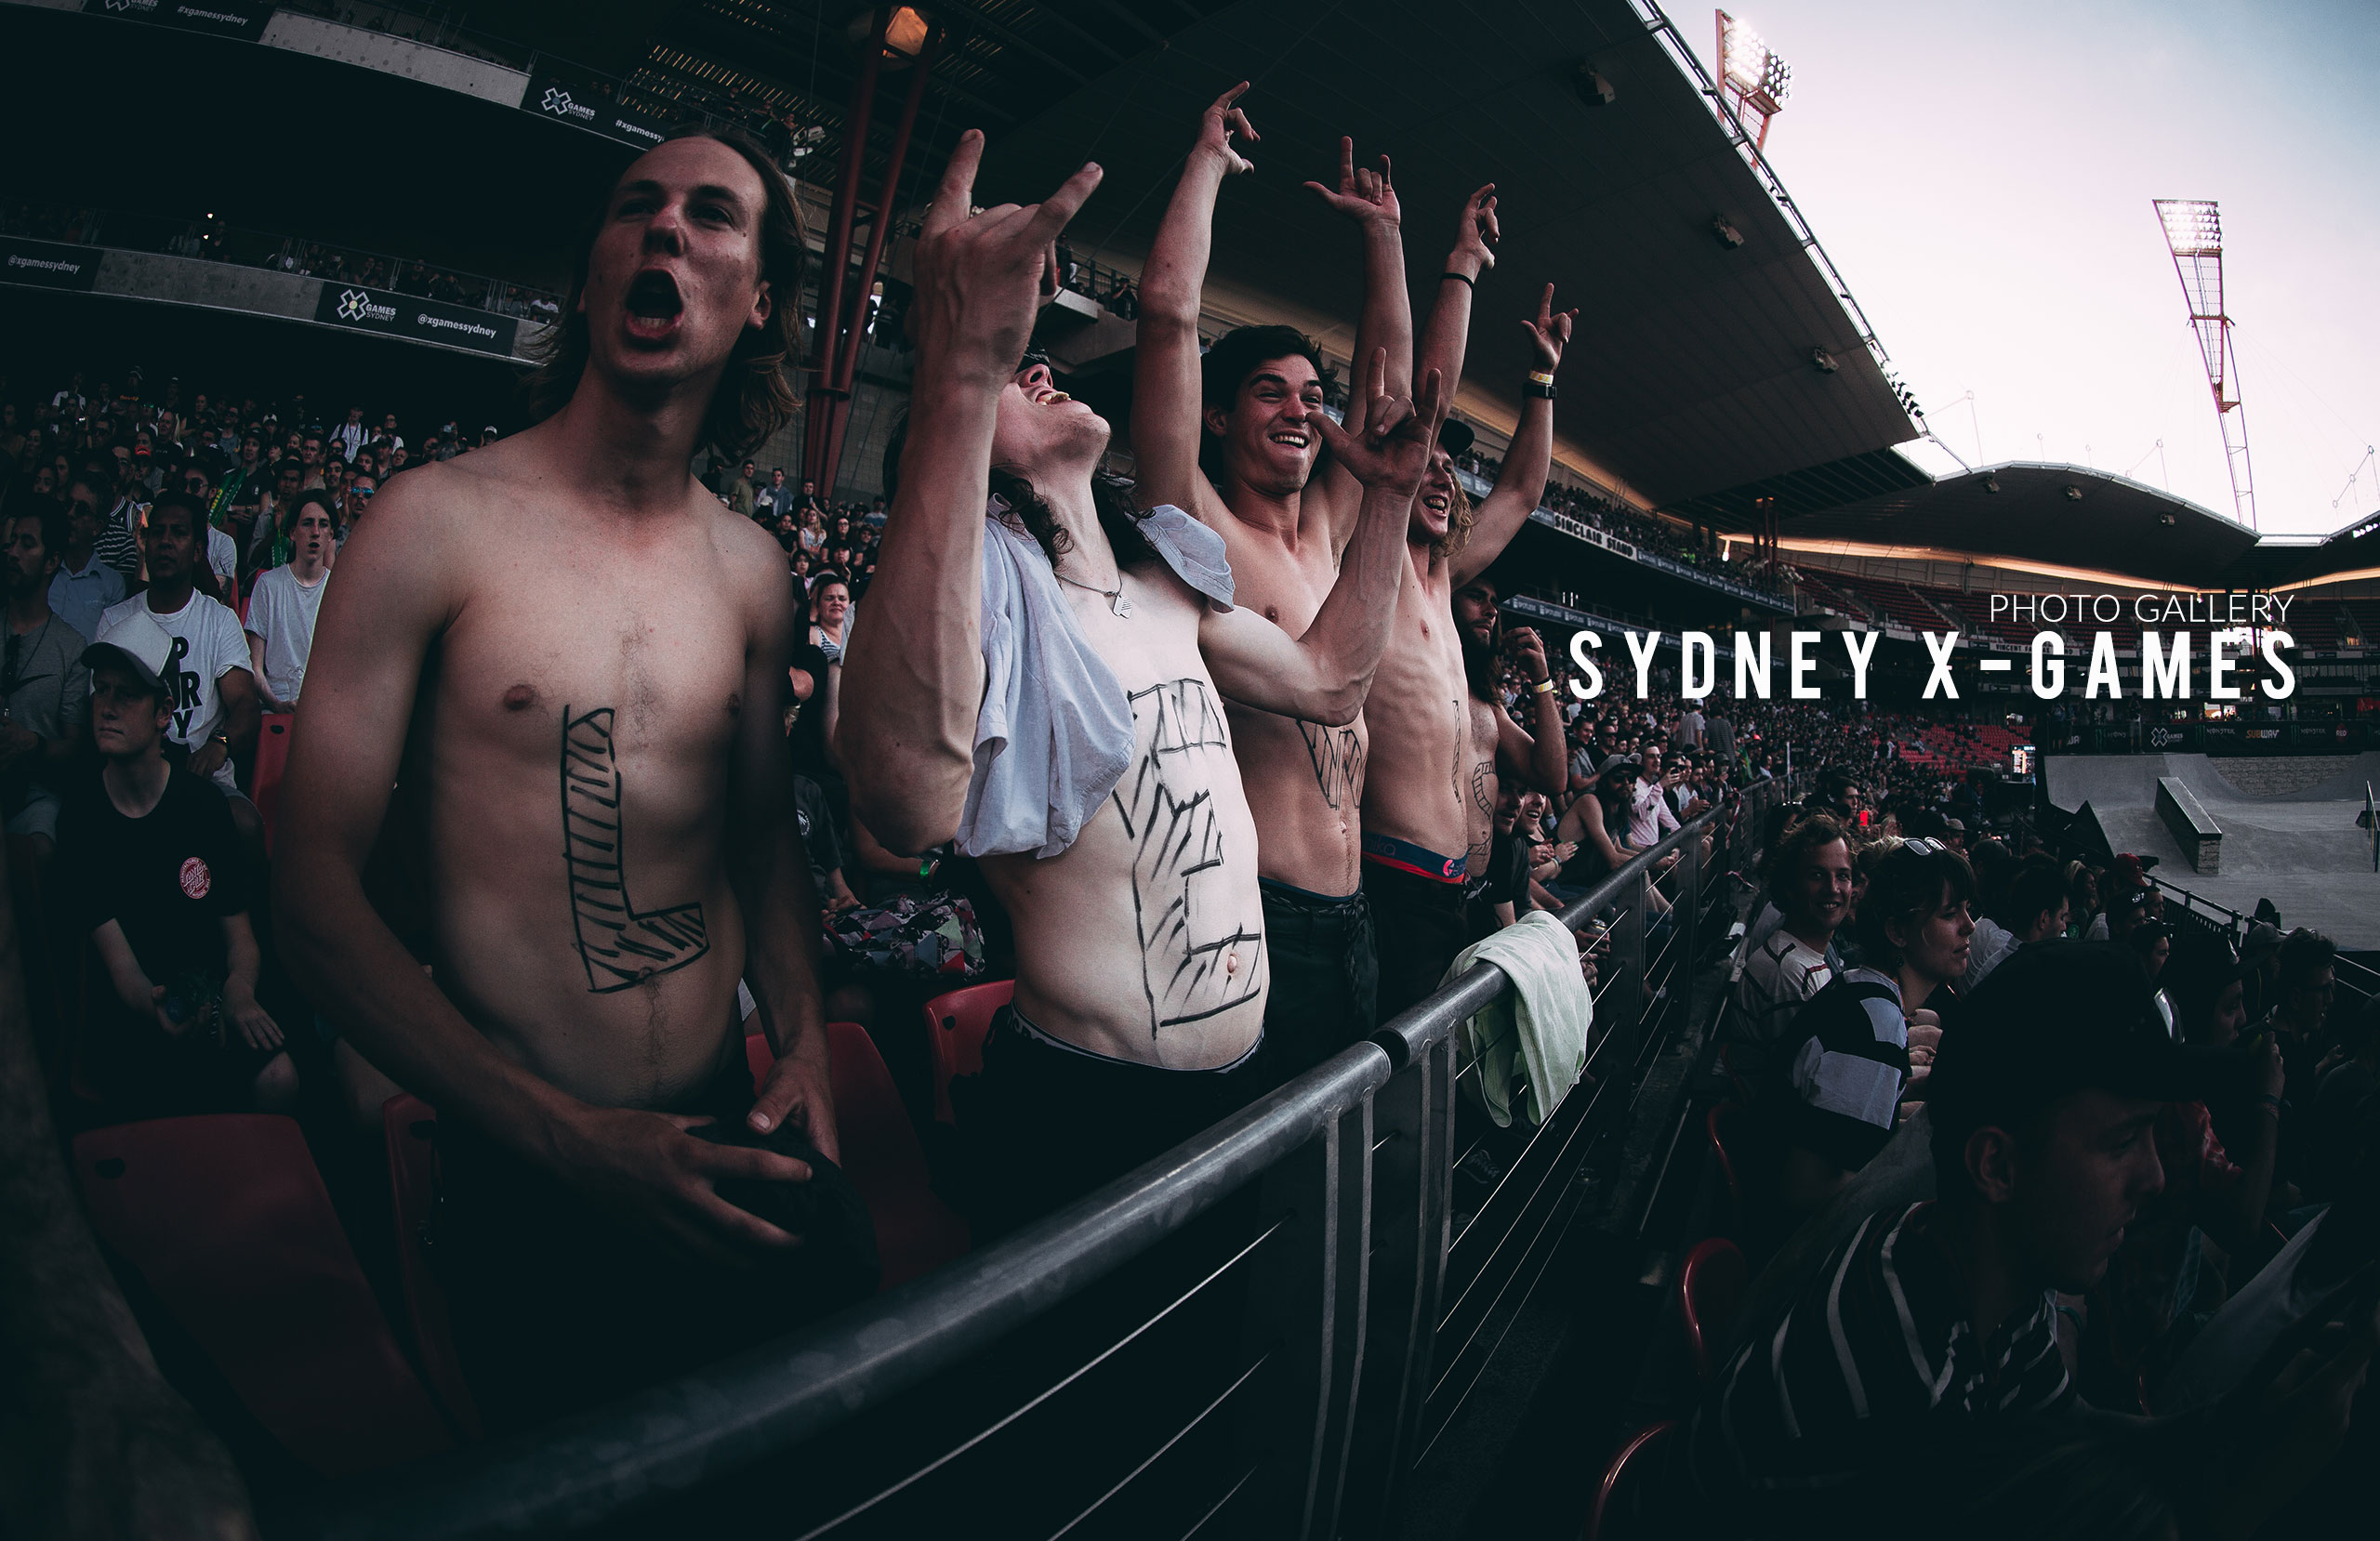 Sydney X-Games Photo Gallery